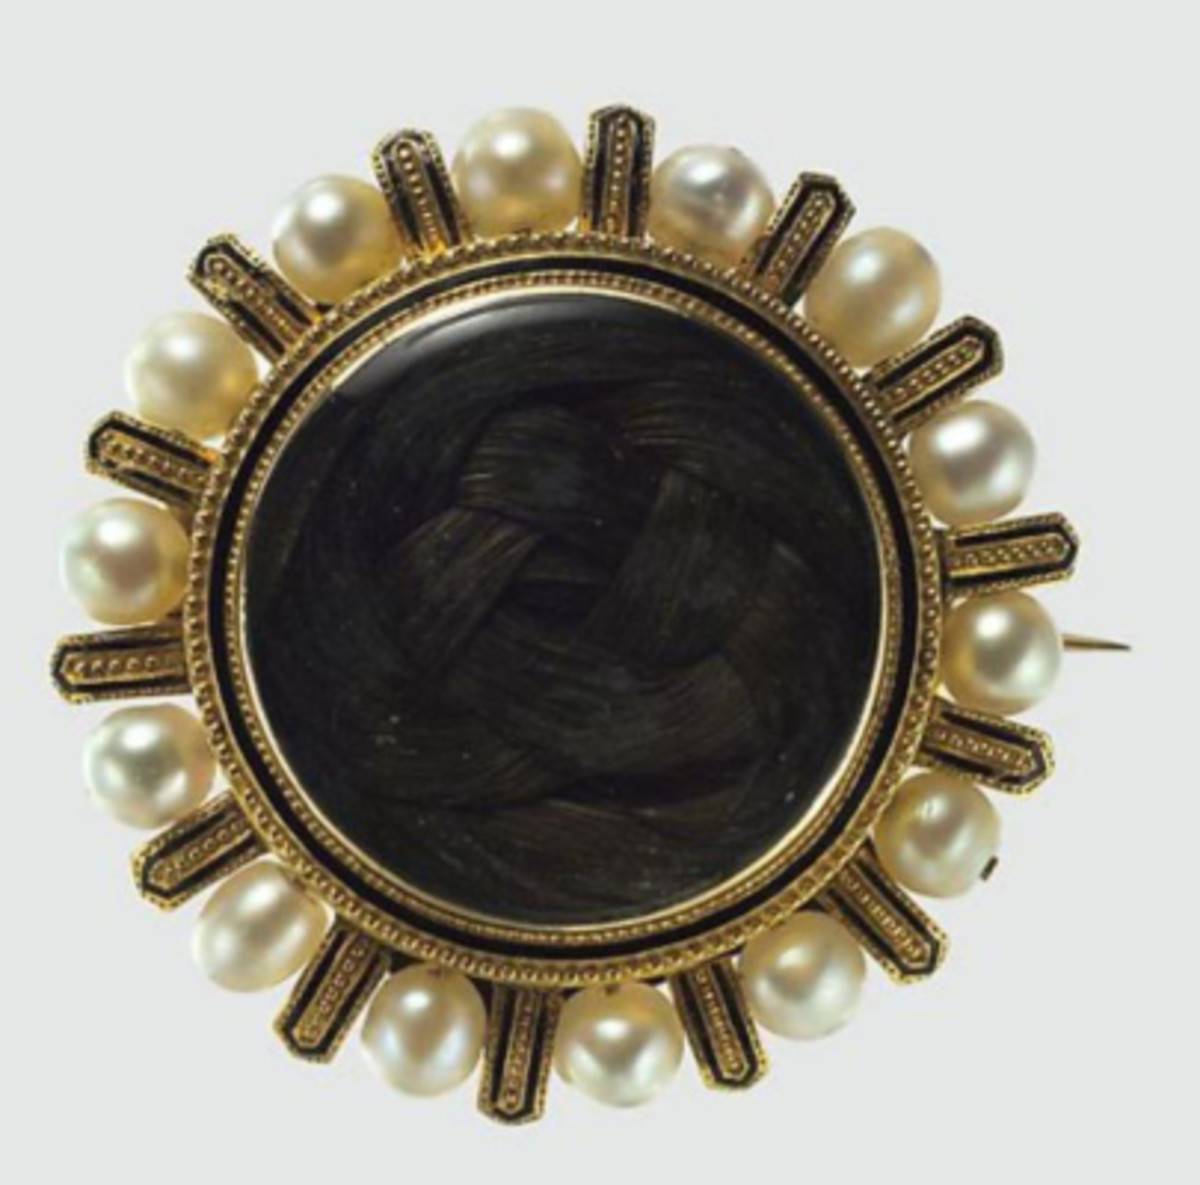 A mourning brooch by Tiffany & Co., 1868, gold, pearls, black enamel and hair.